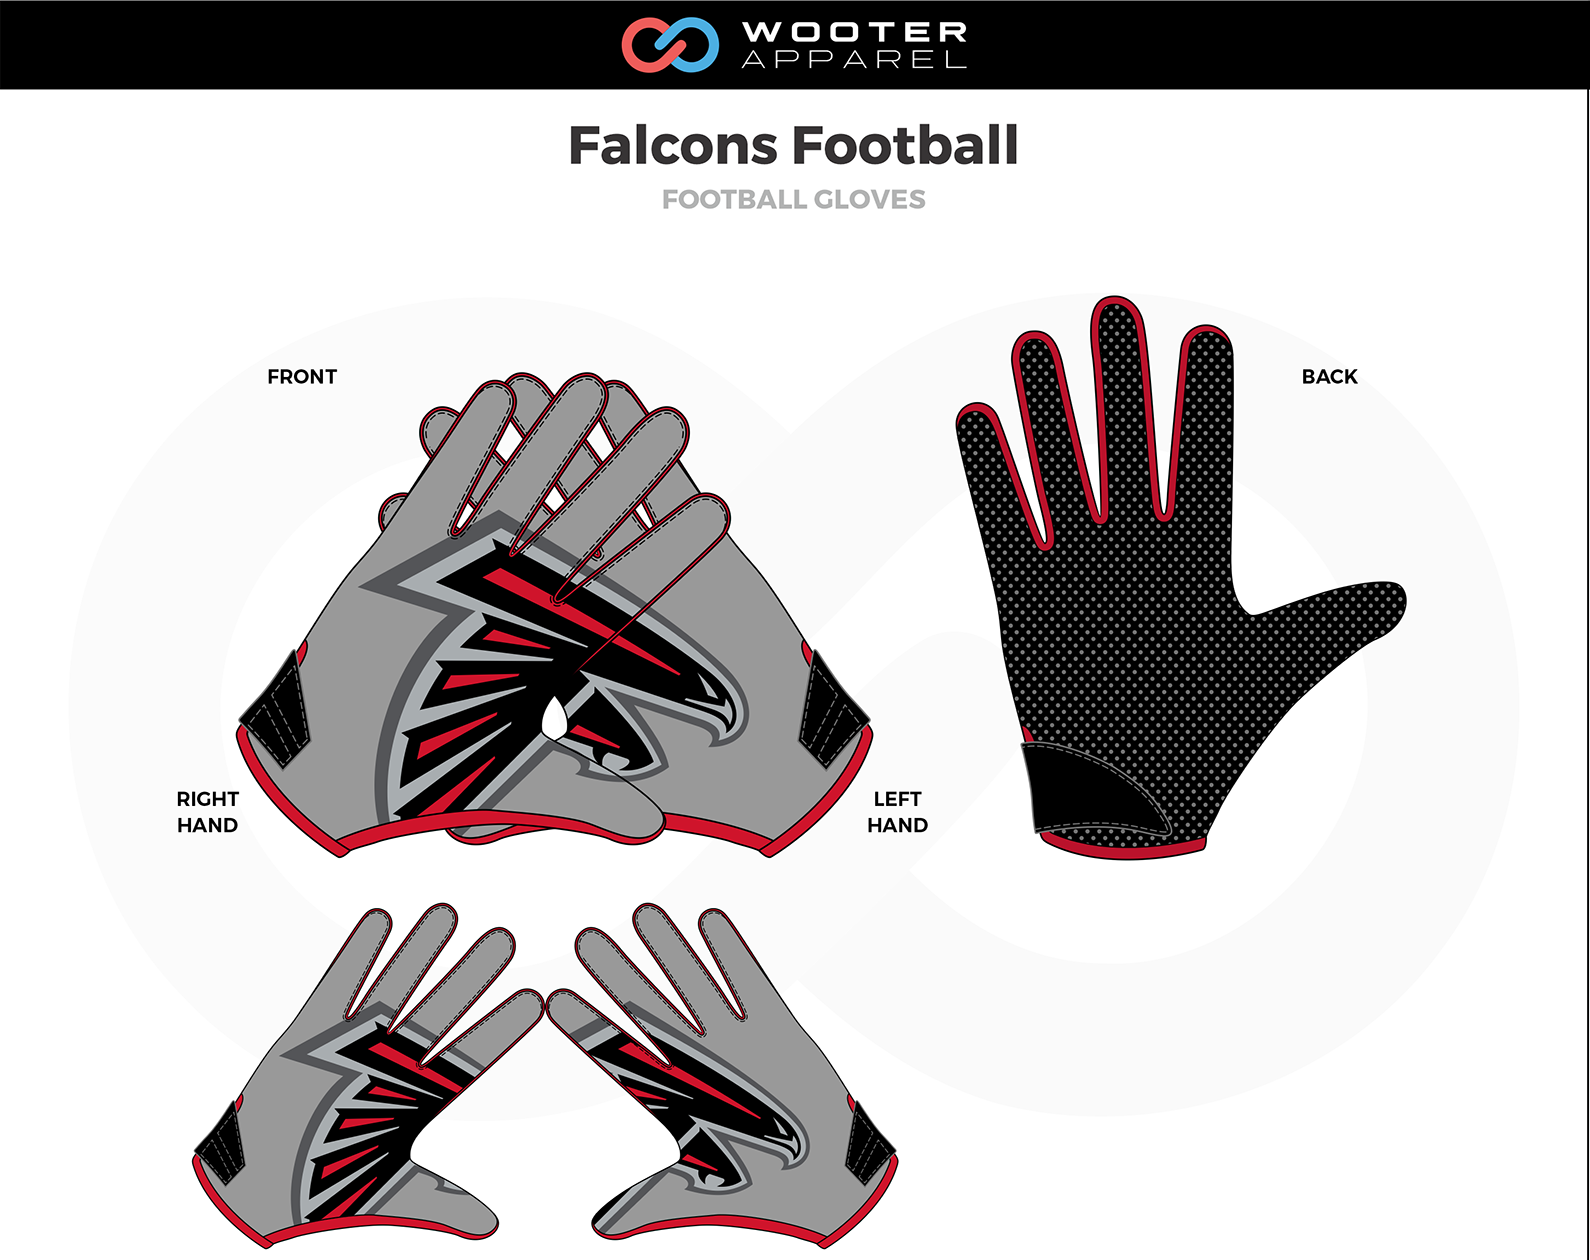 19C0025 - [Jared] Falcons Football GLOVES.png